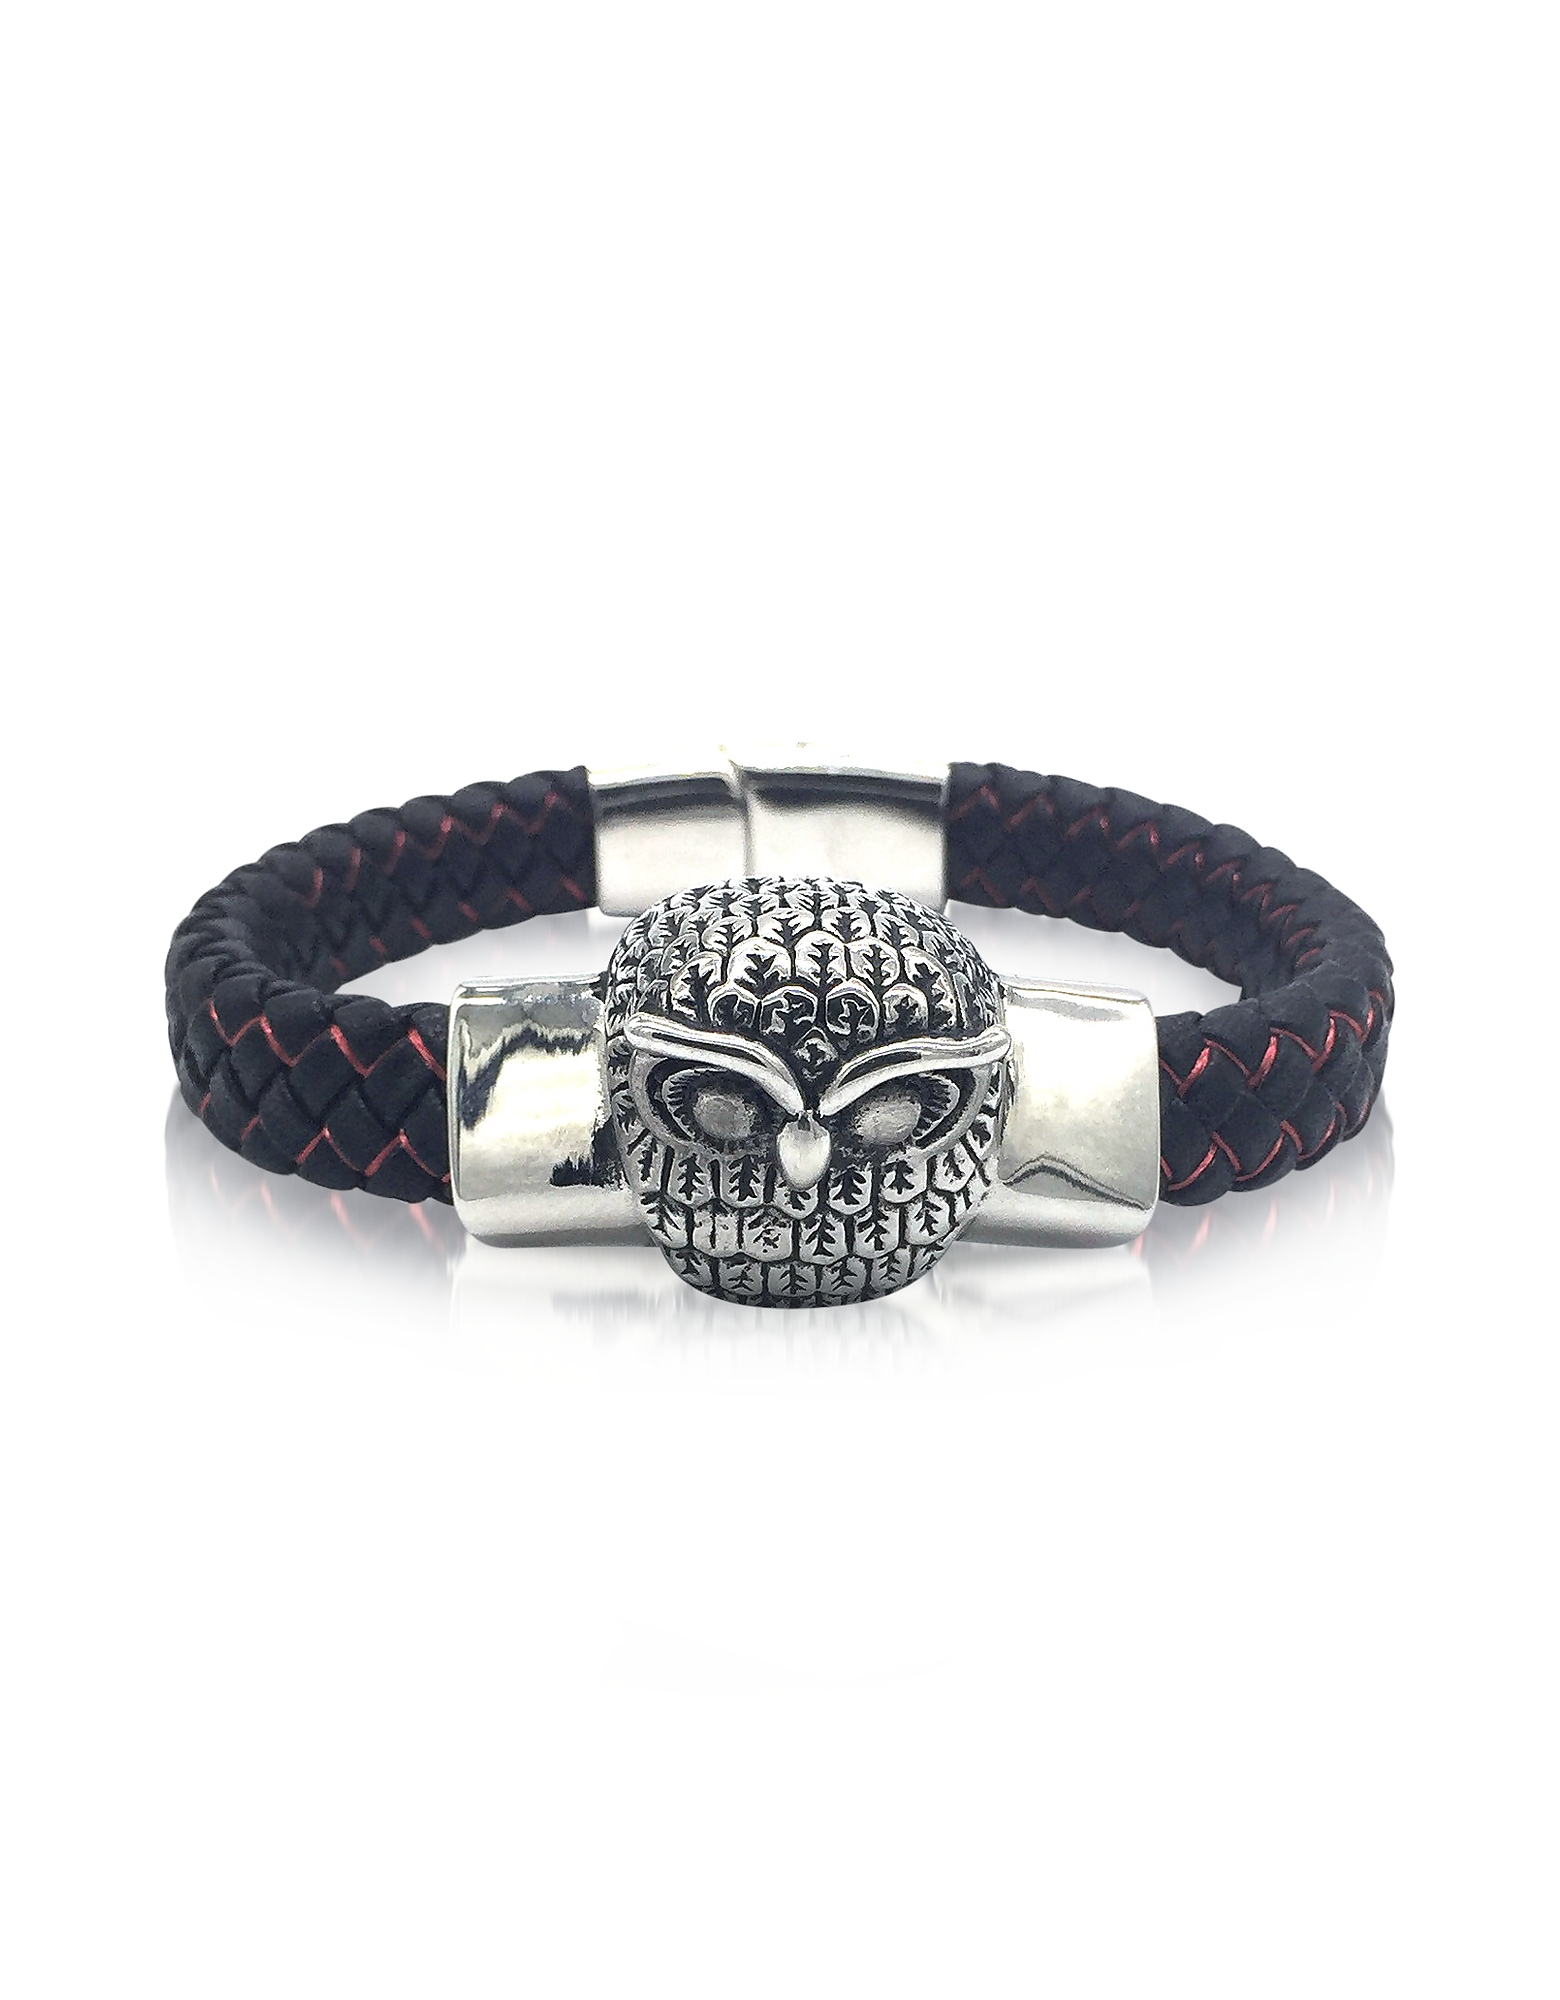 Blackbourne Designer Bracelets, Owl Engraved Stainless Steel and Braided Leather Men's Bracelet